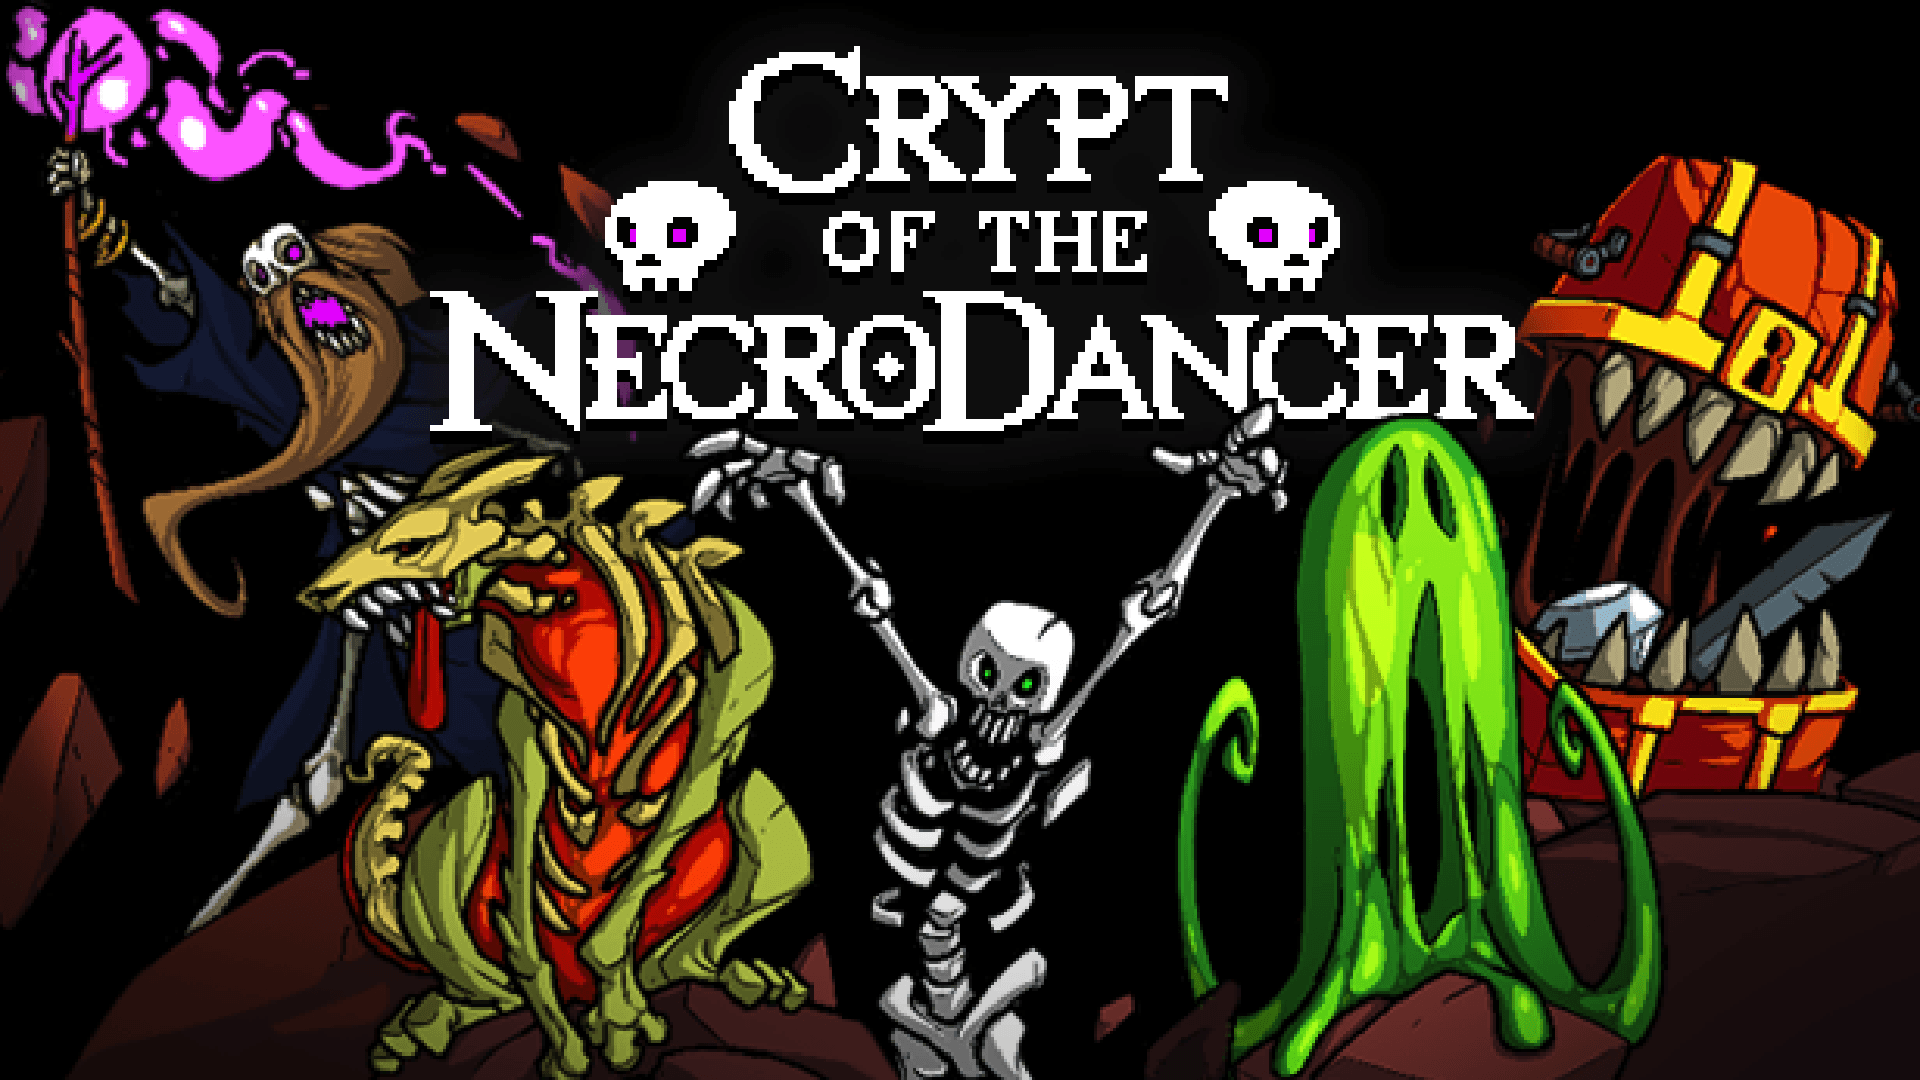 Crypt of the Necrodancer 2 NintendOn